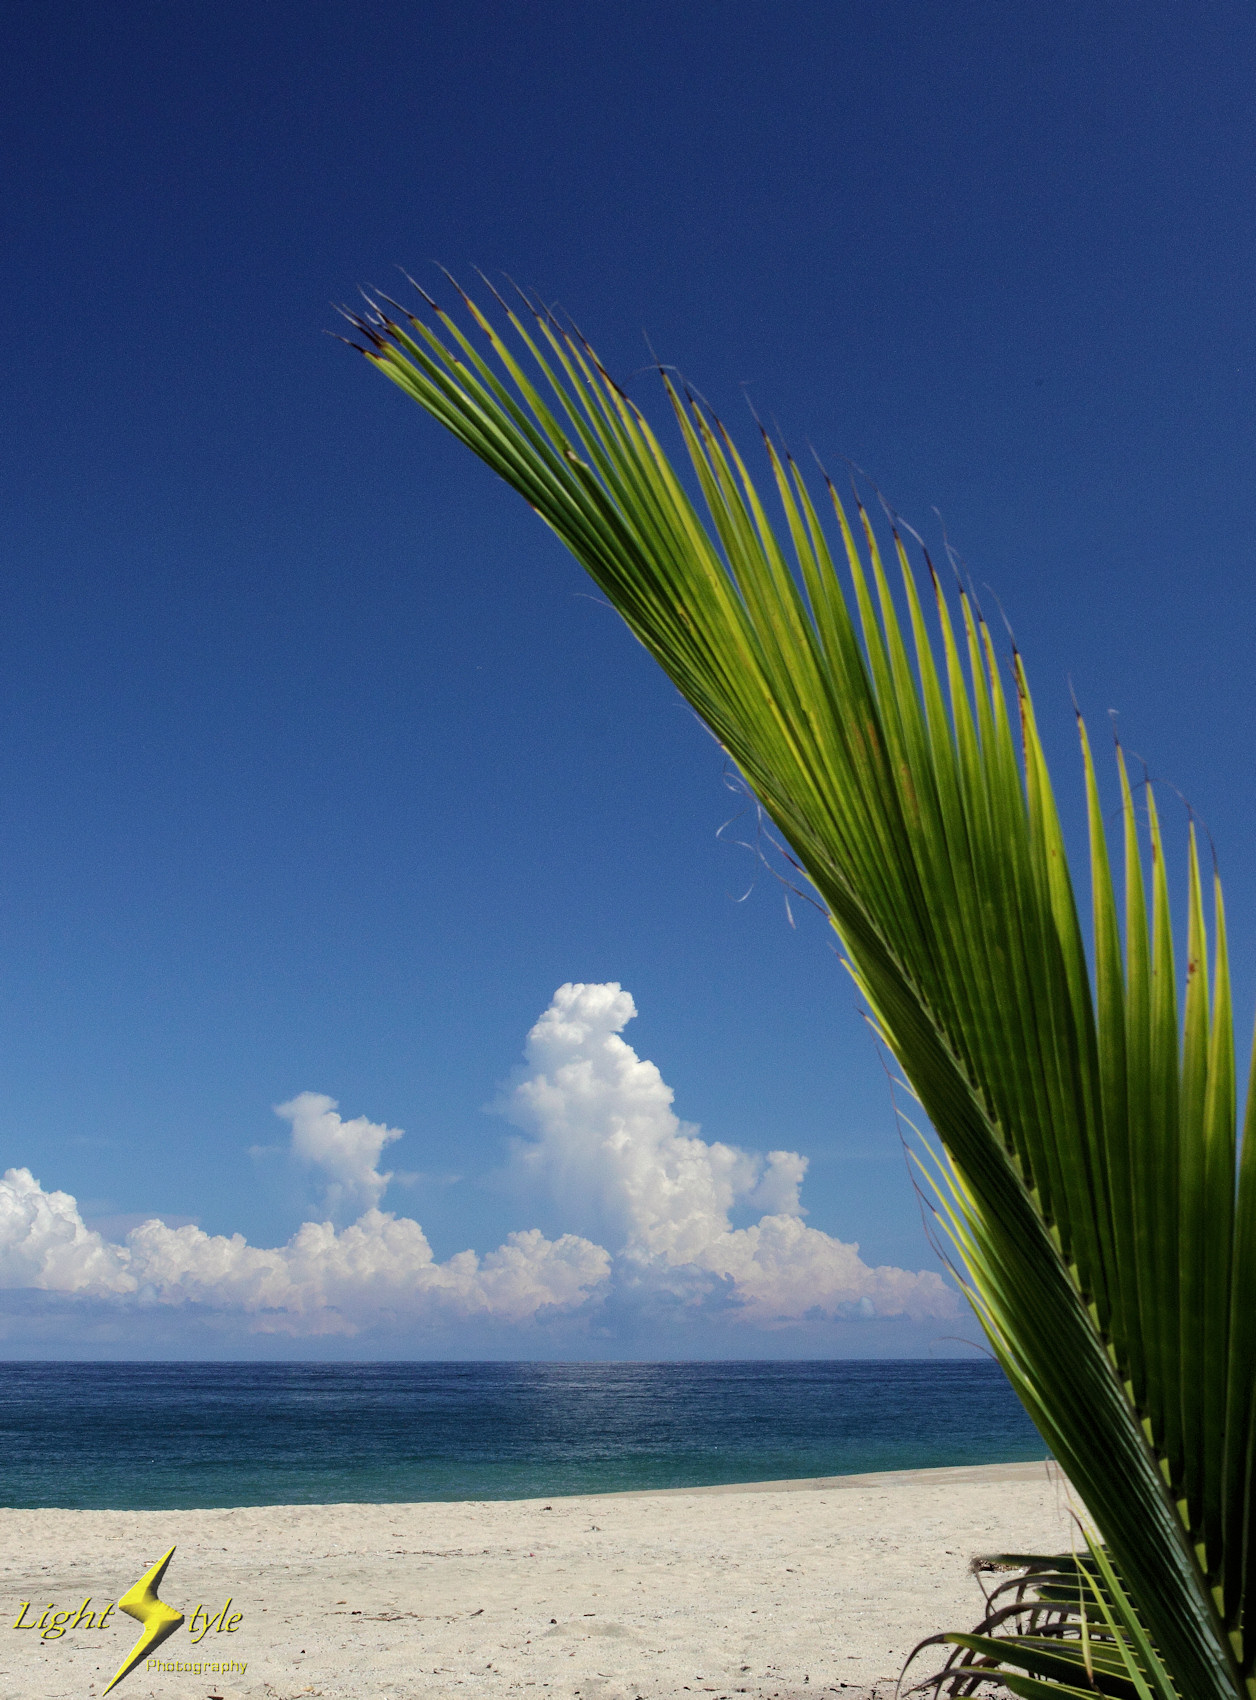 188_upload_Palm frond and clouds_1700x_6306